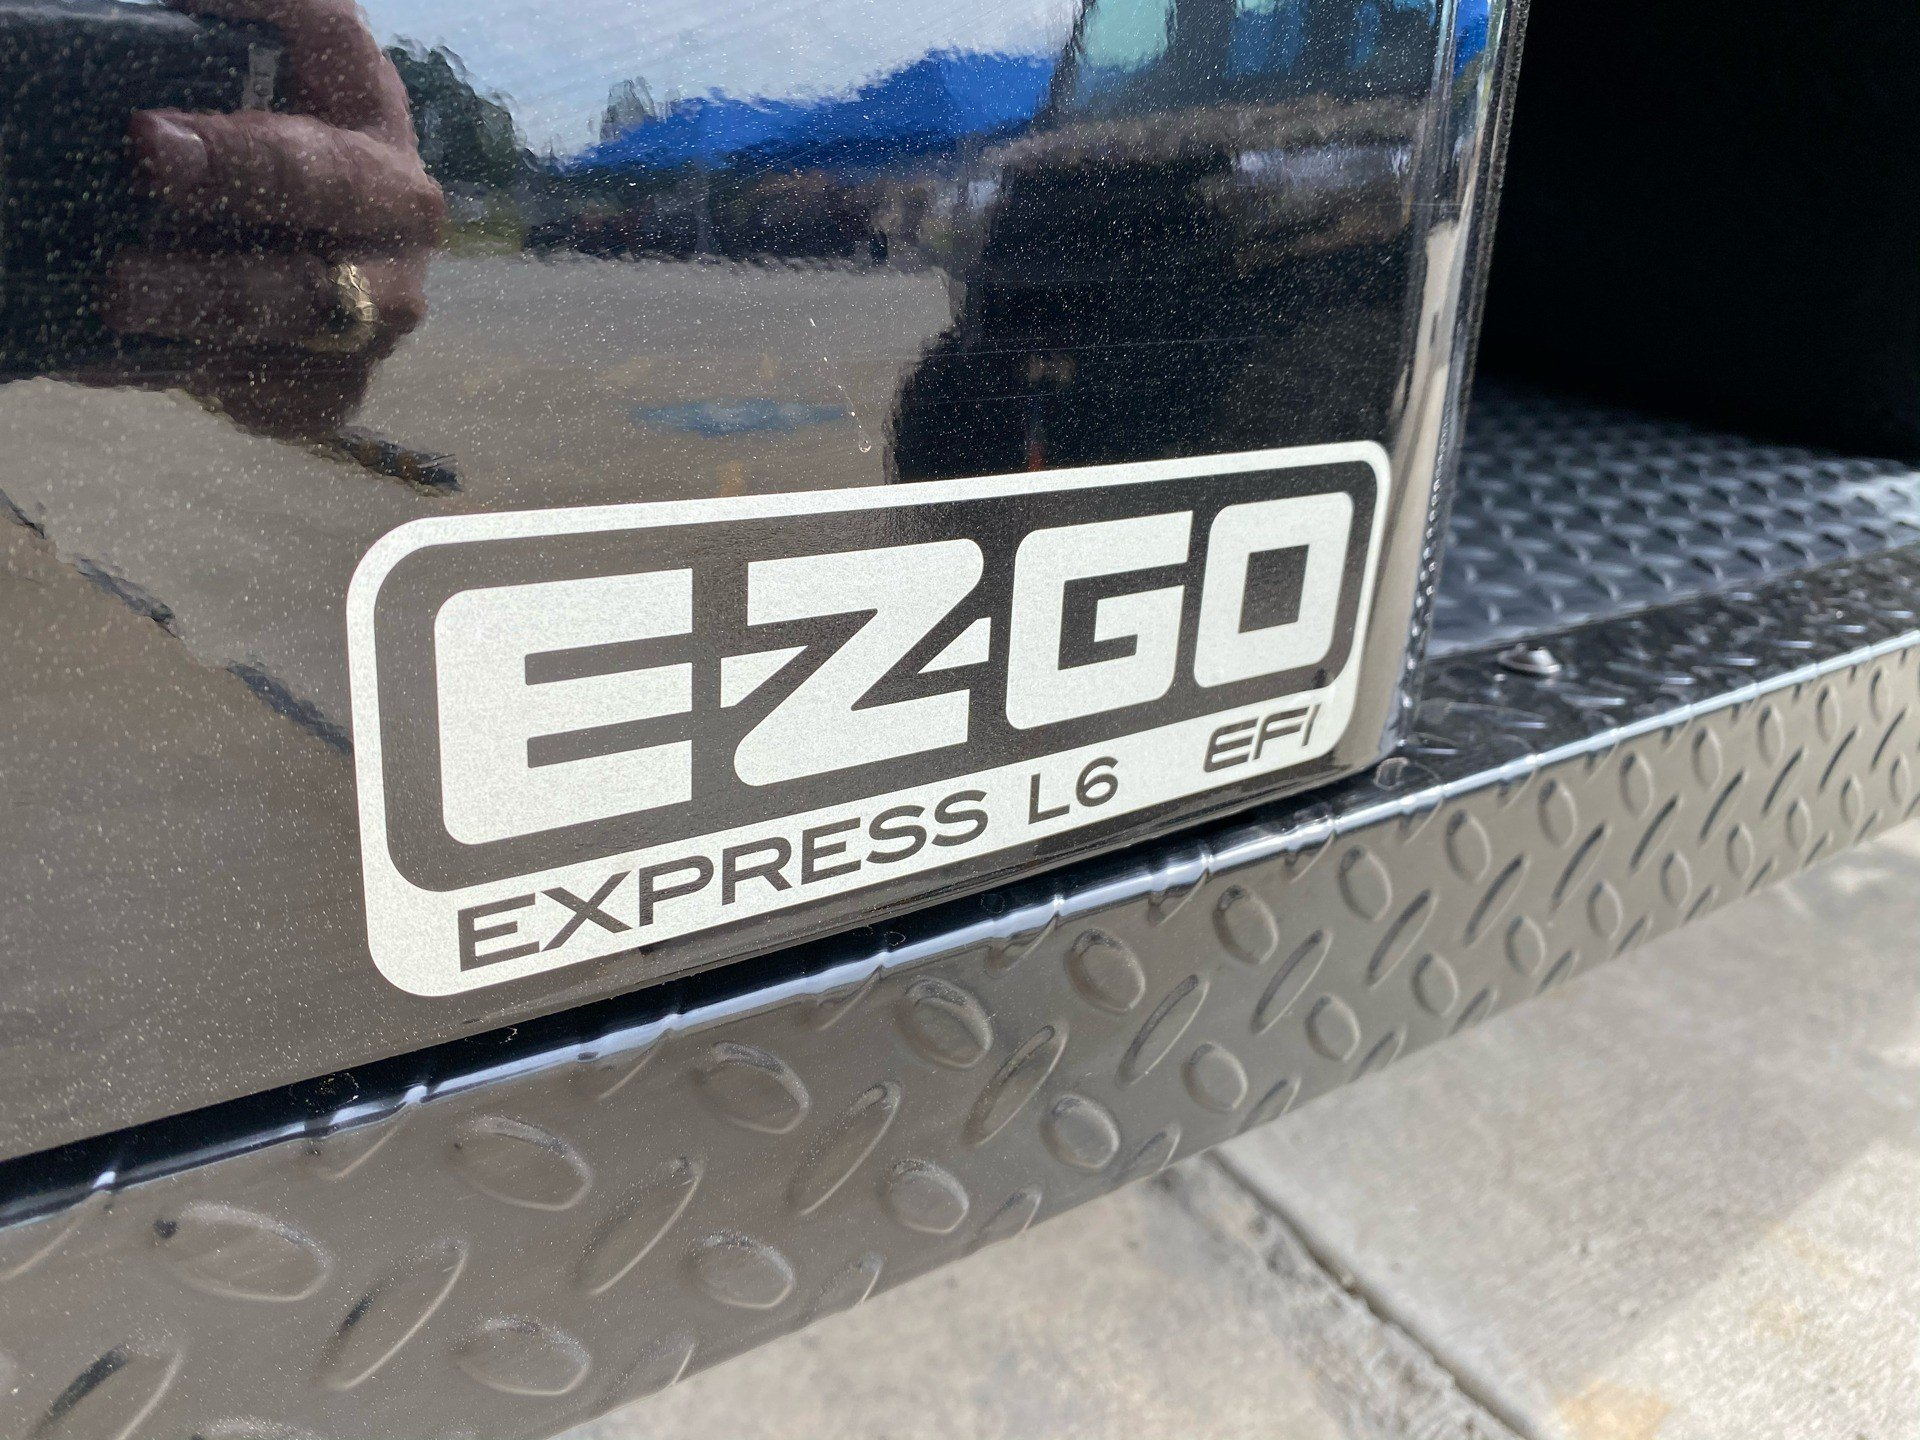 2020 E-Z-GO Express L6 Gas in Marshall, Texas - Photo 9